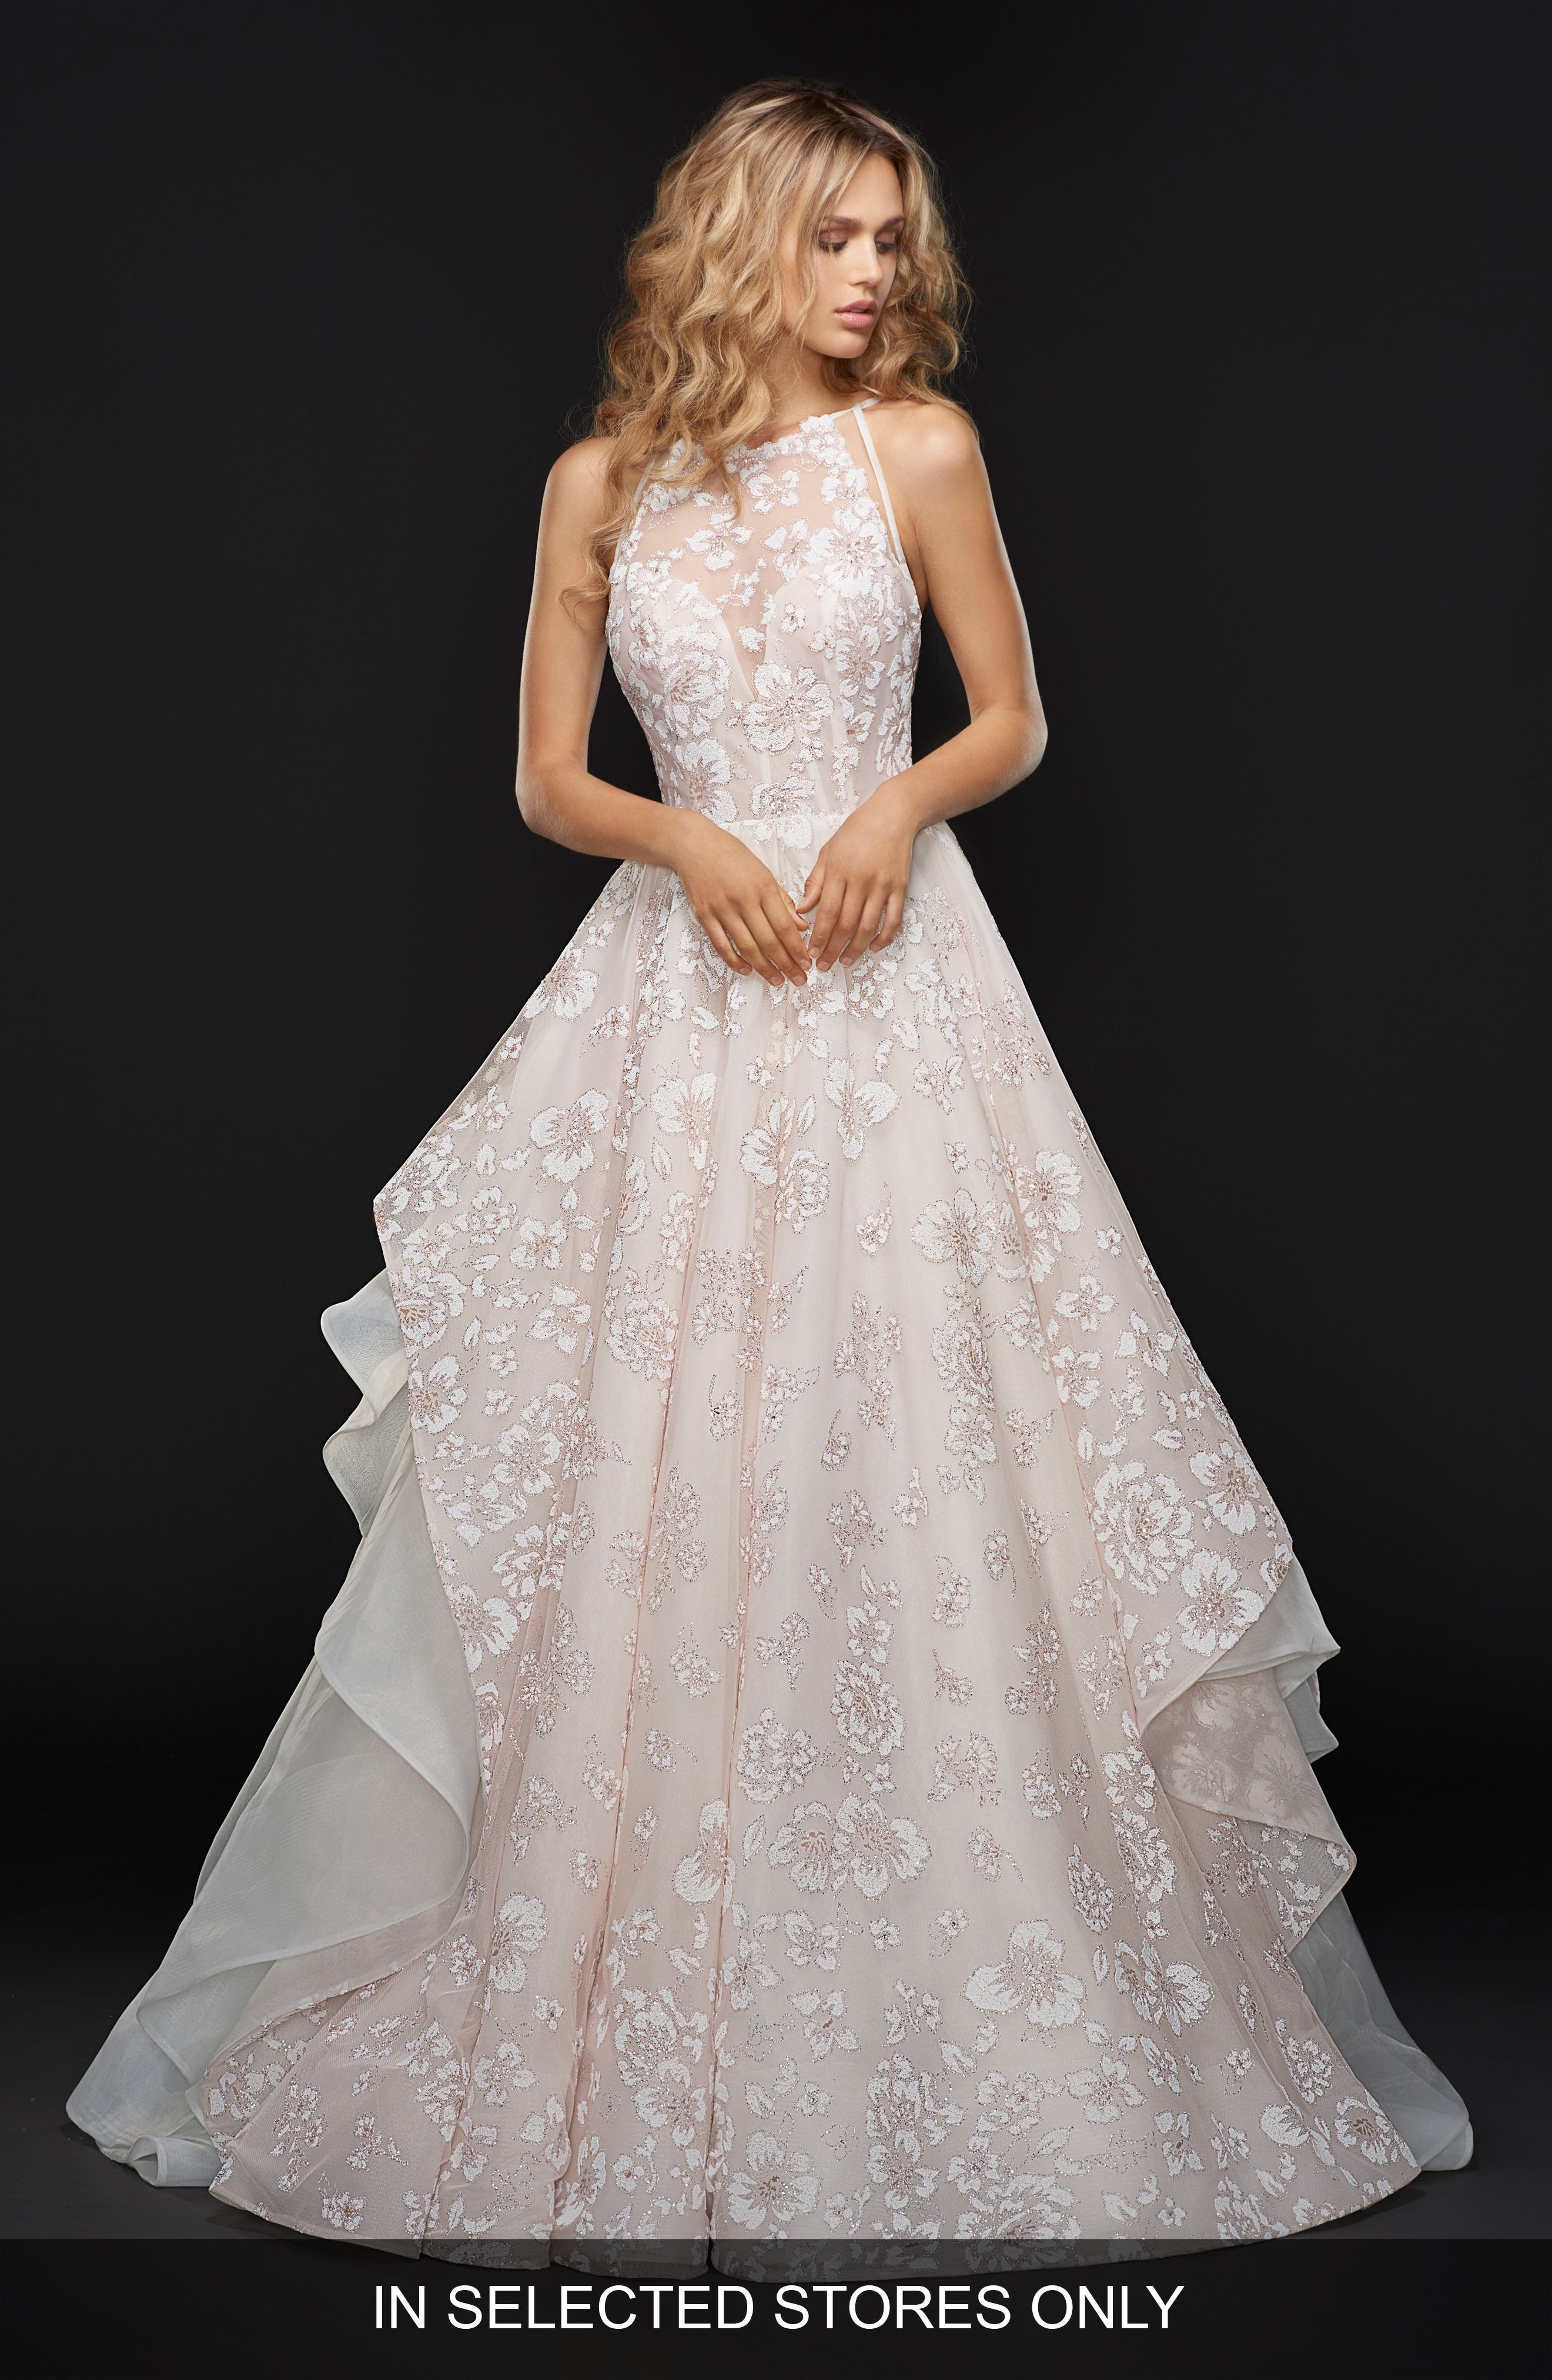 Main Image - Hayley Paige Reagan Floral Embroidered Layered Ballgown